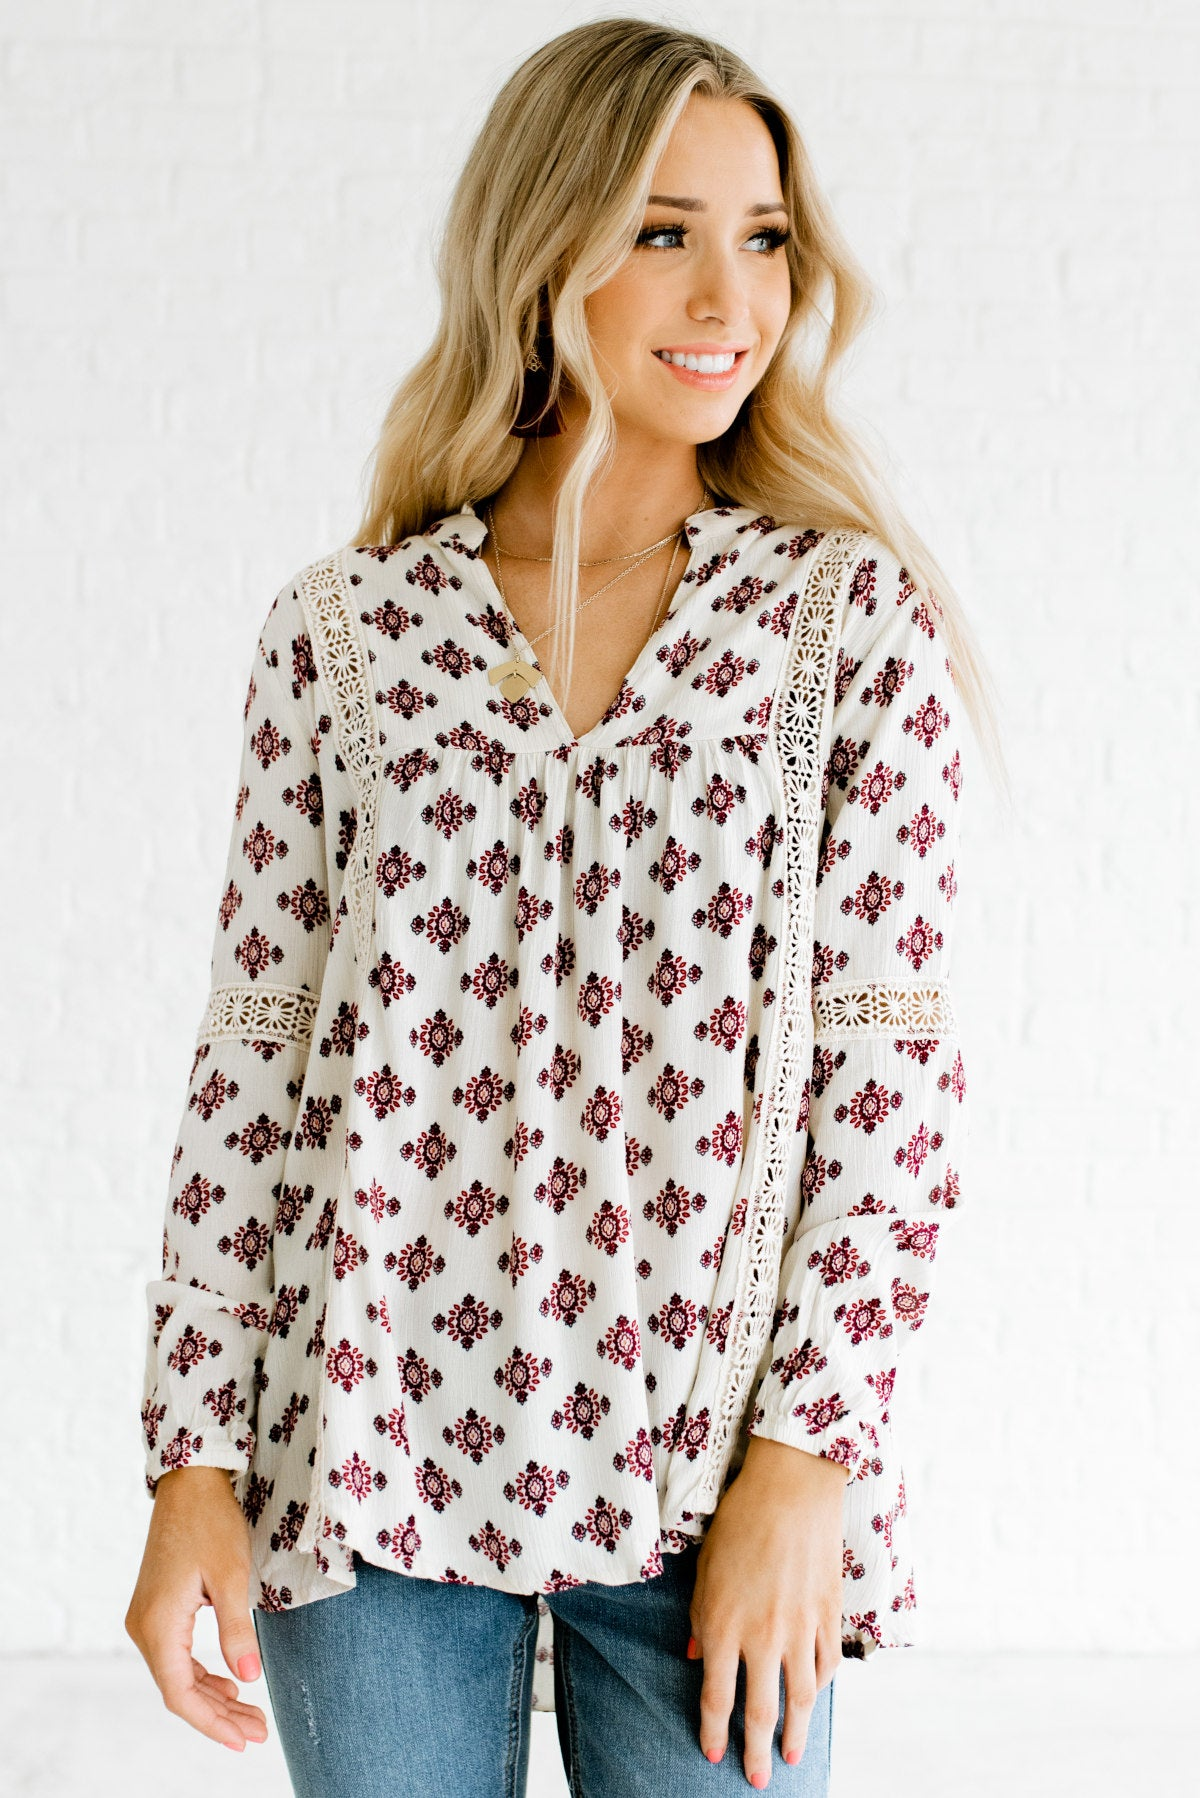 Cream White Patterned Boutique Blouses for Women